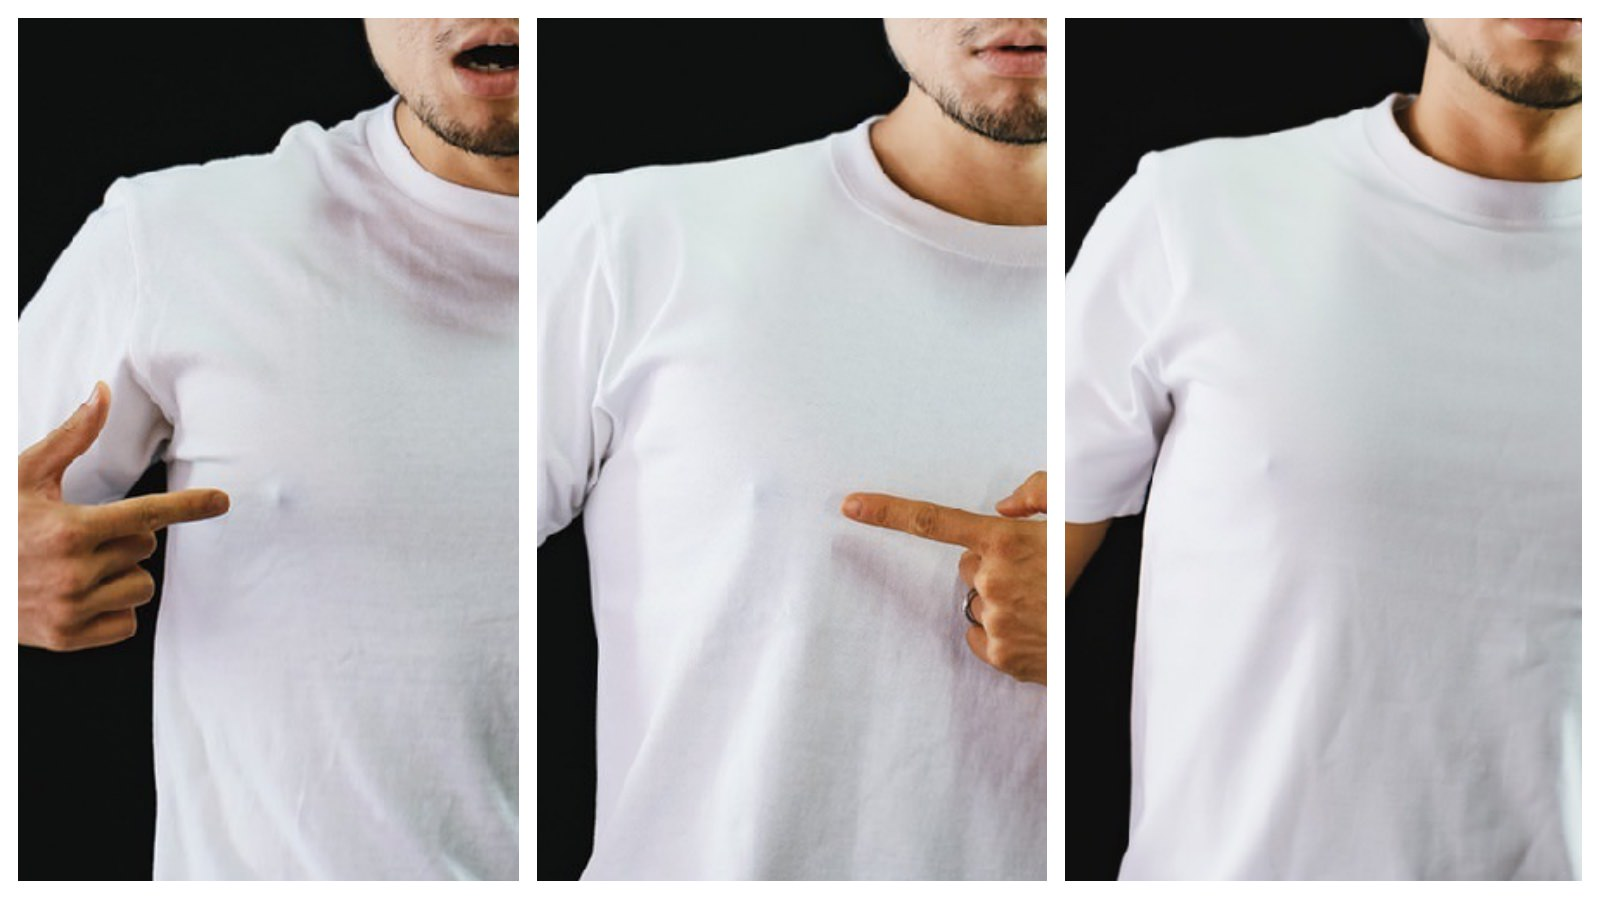 Three-Types-of-White-Tshirts-Compared-2